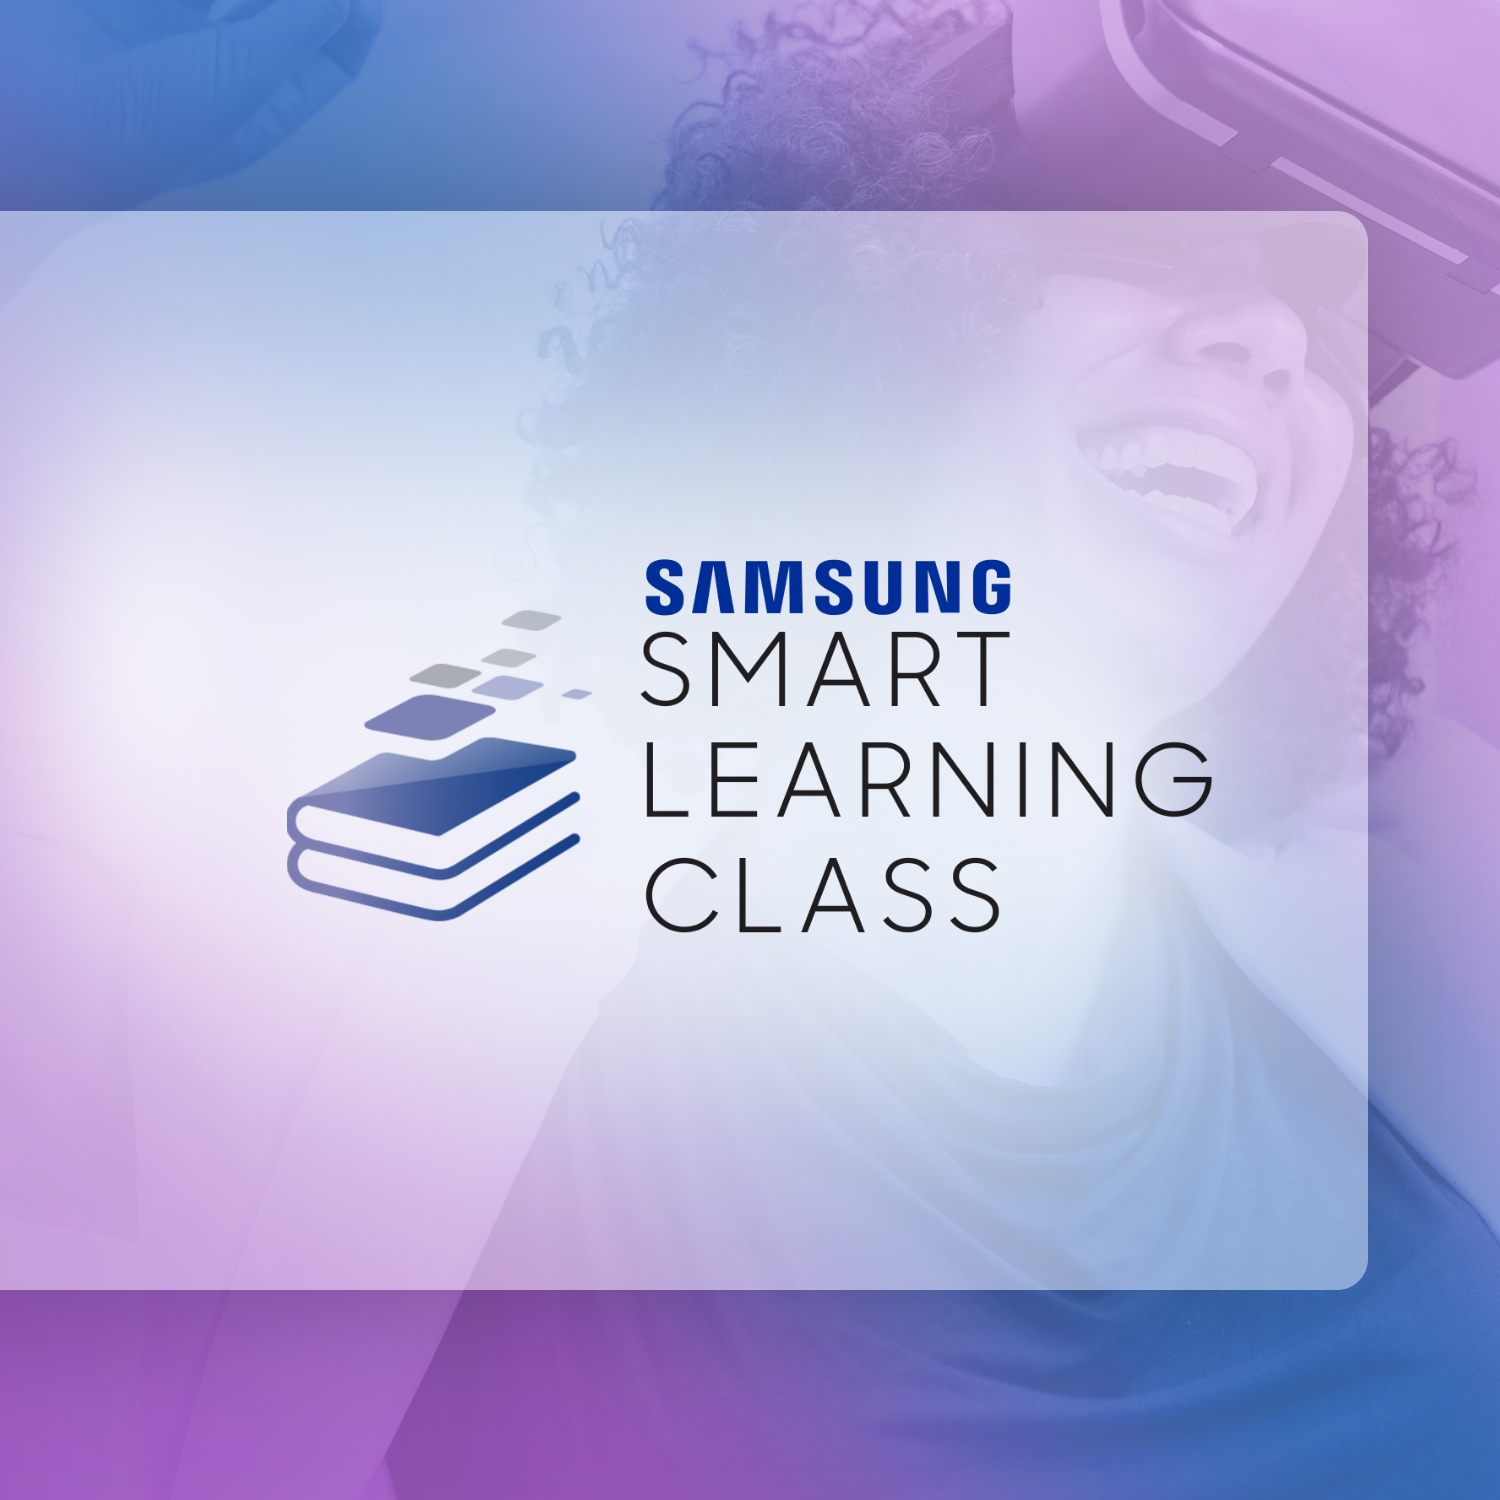 Samsung Smart Learning Class - Games Unity Challenge